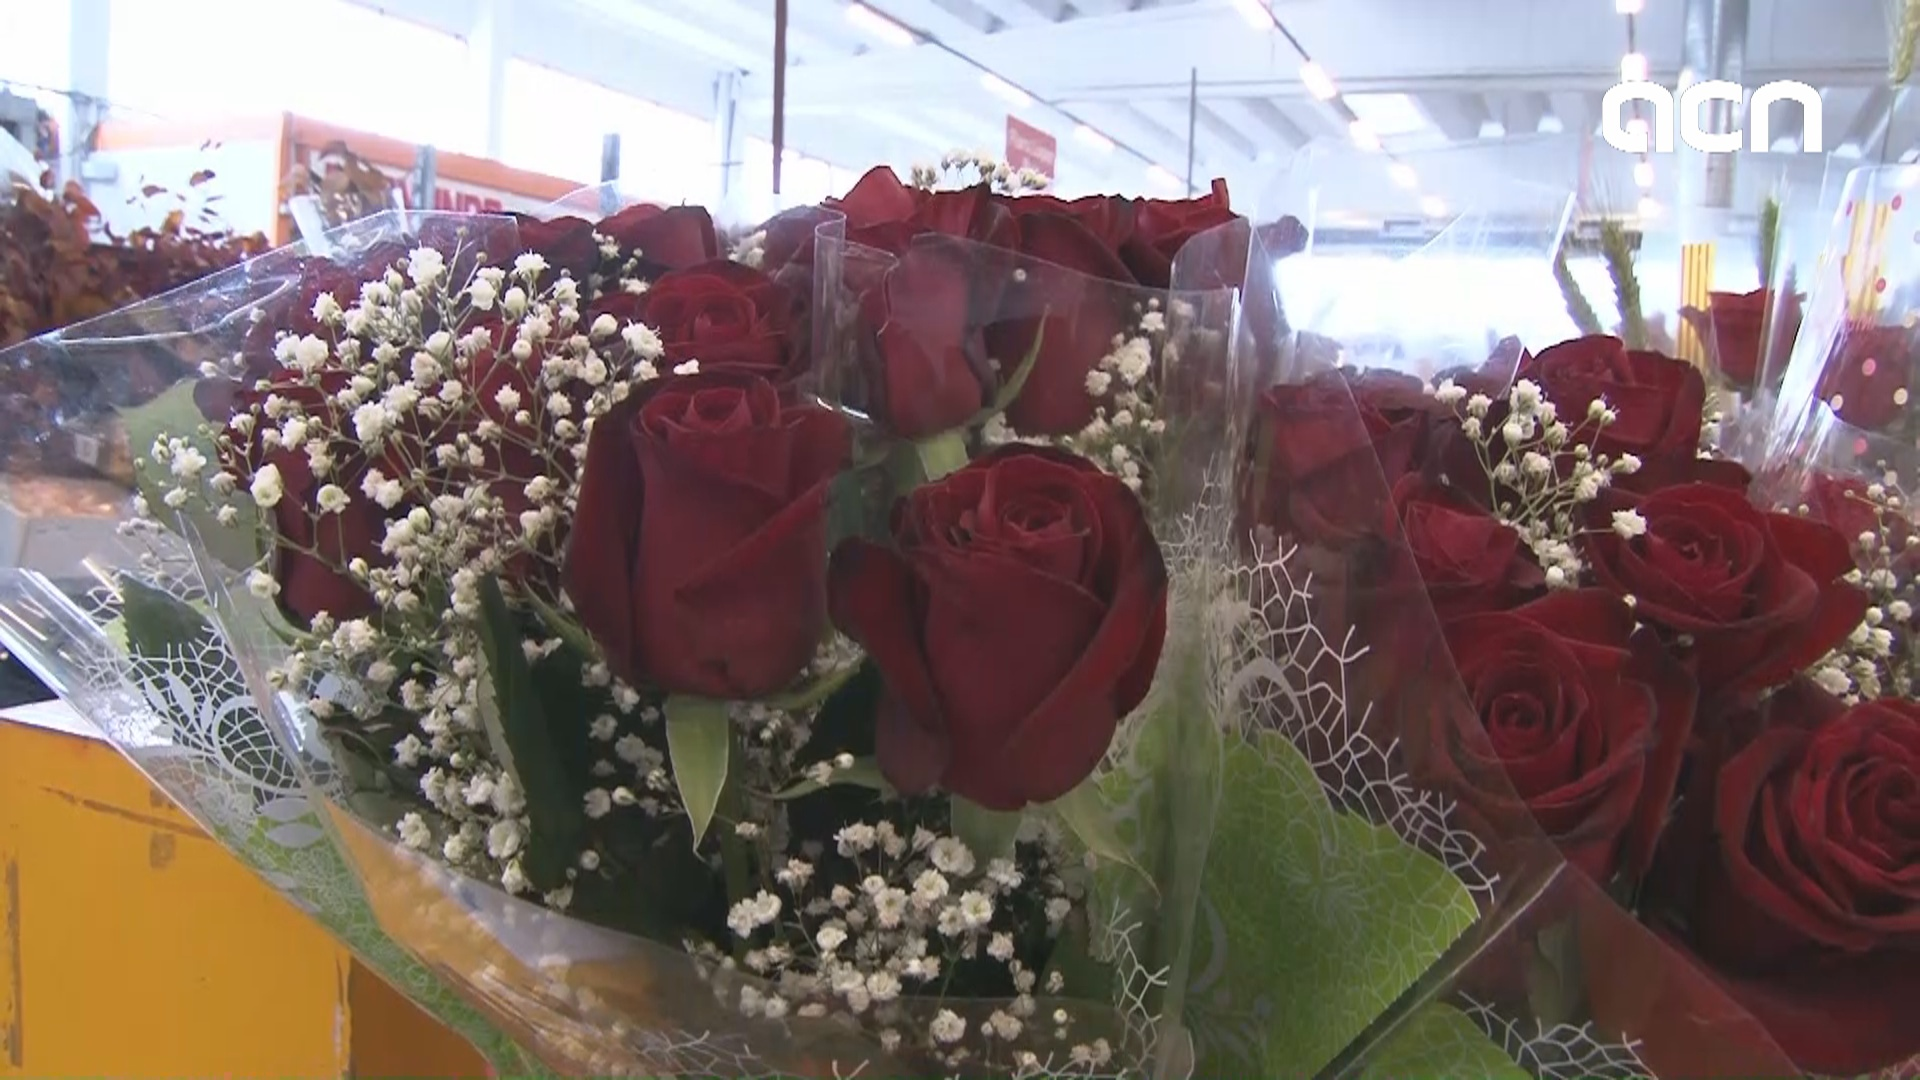 Flower sales for St. Jordi to increase some 25%